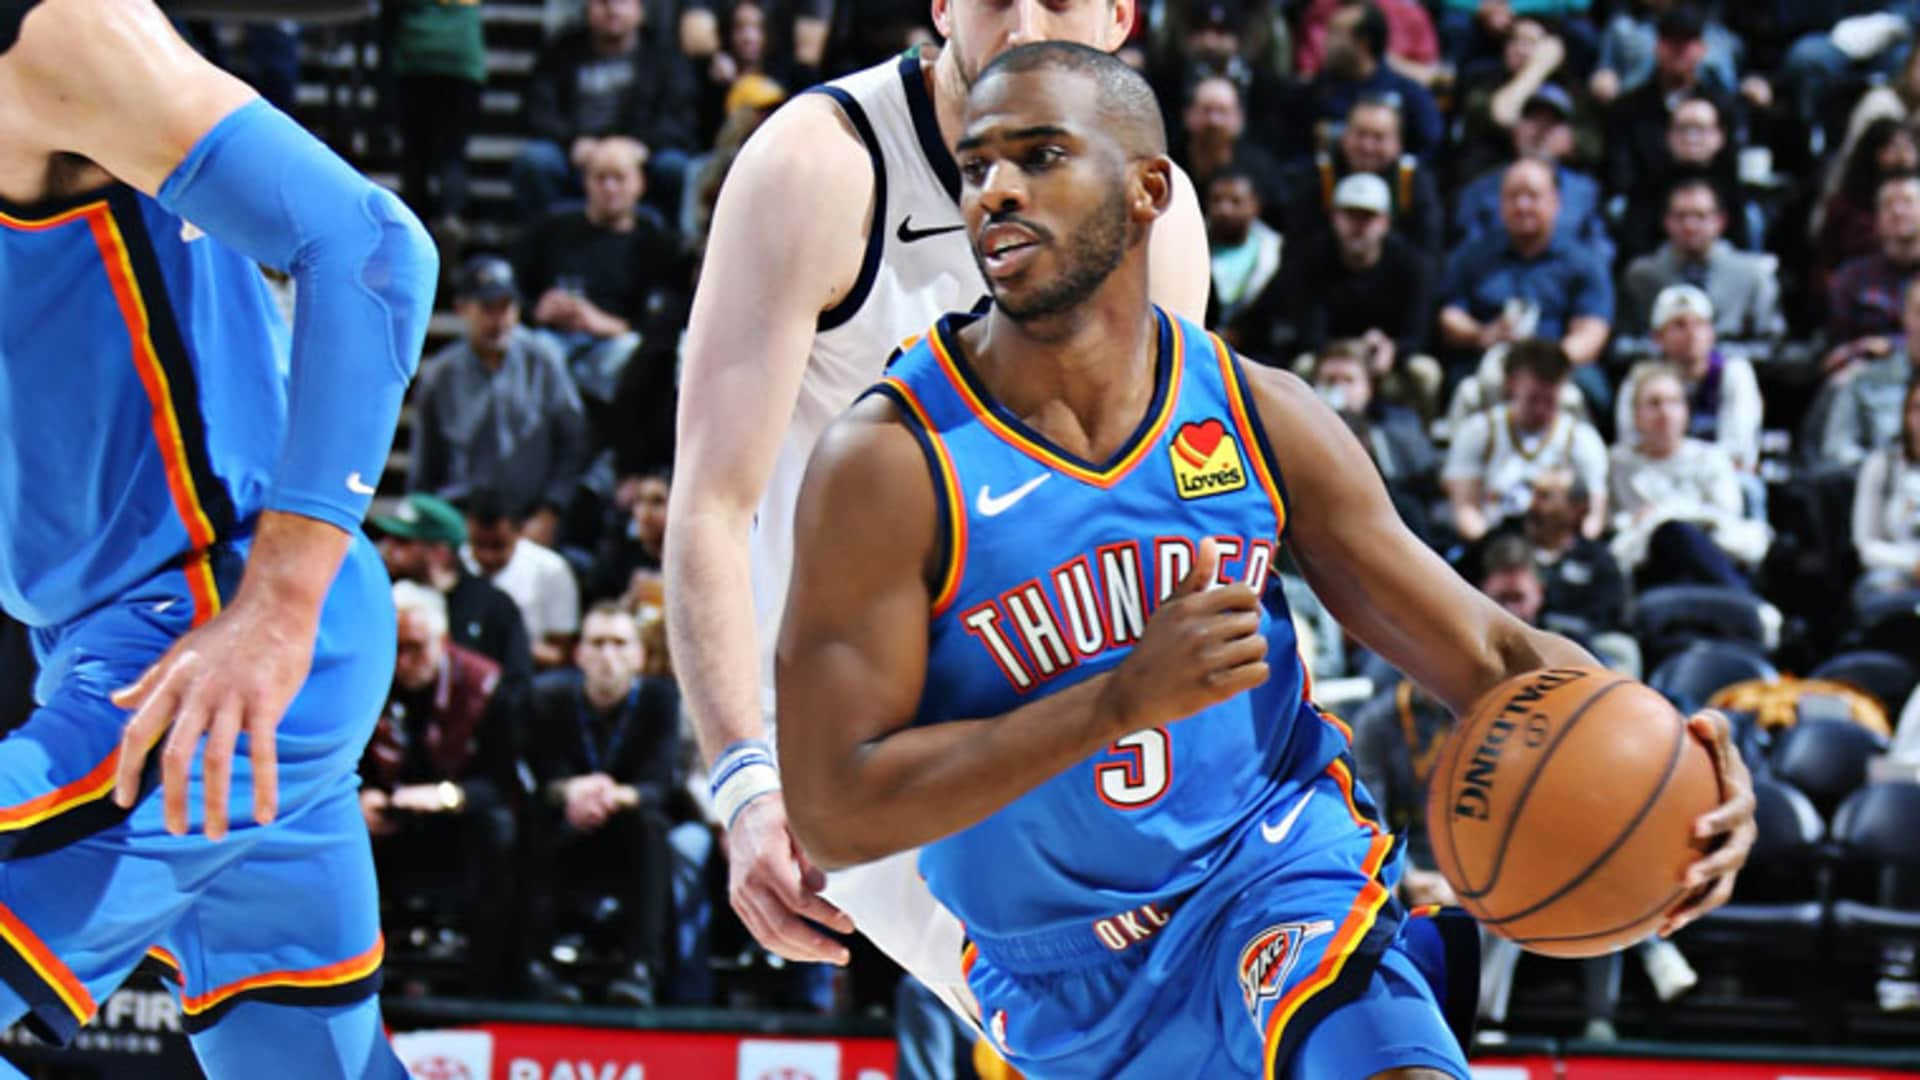 Highlights: Thunder 104, Jazz 90